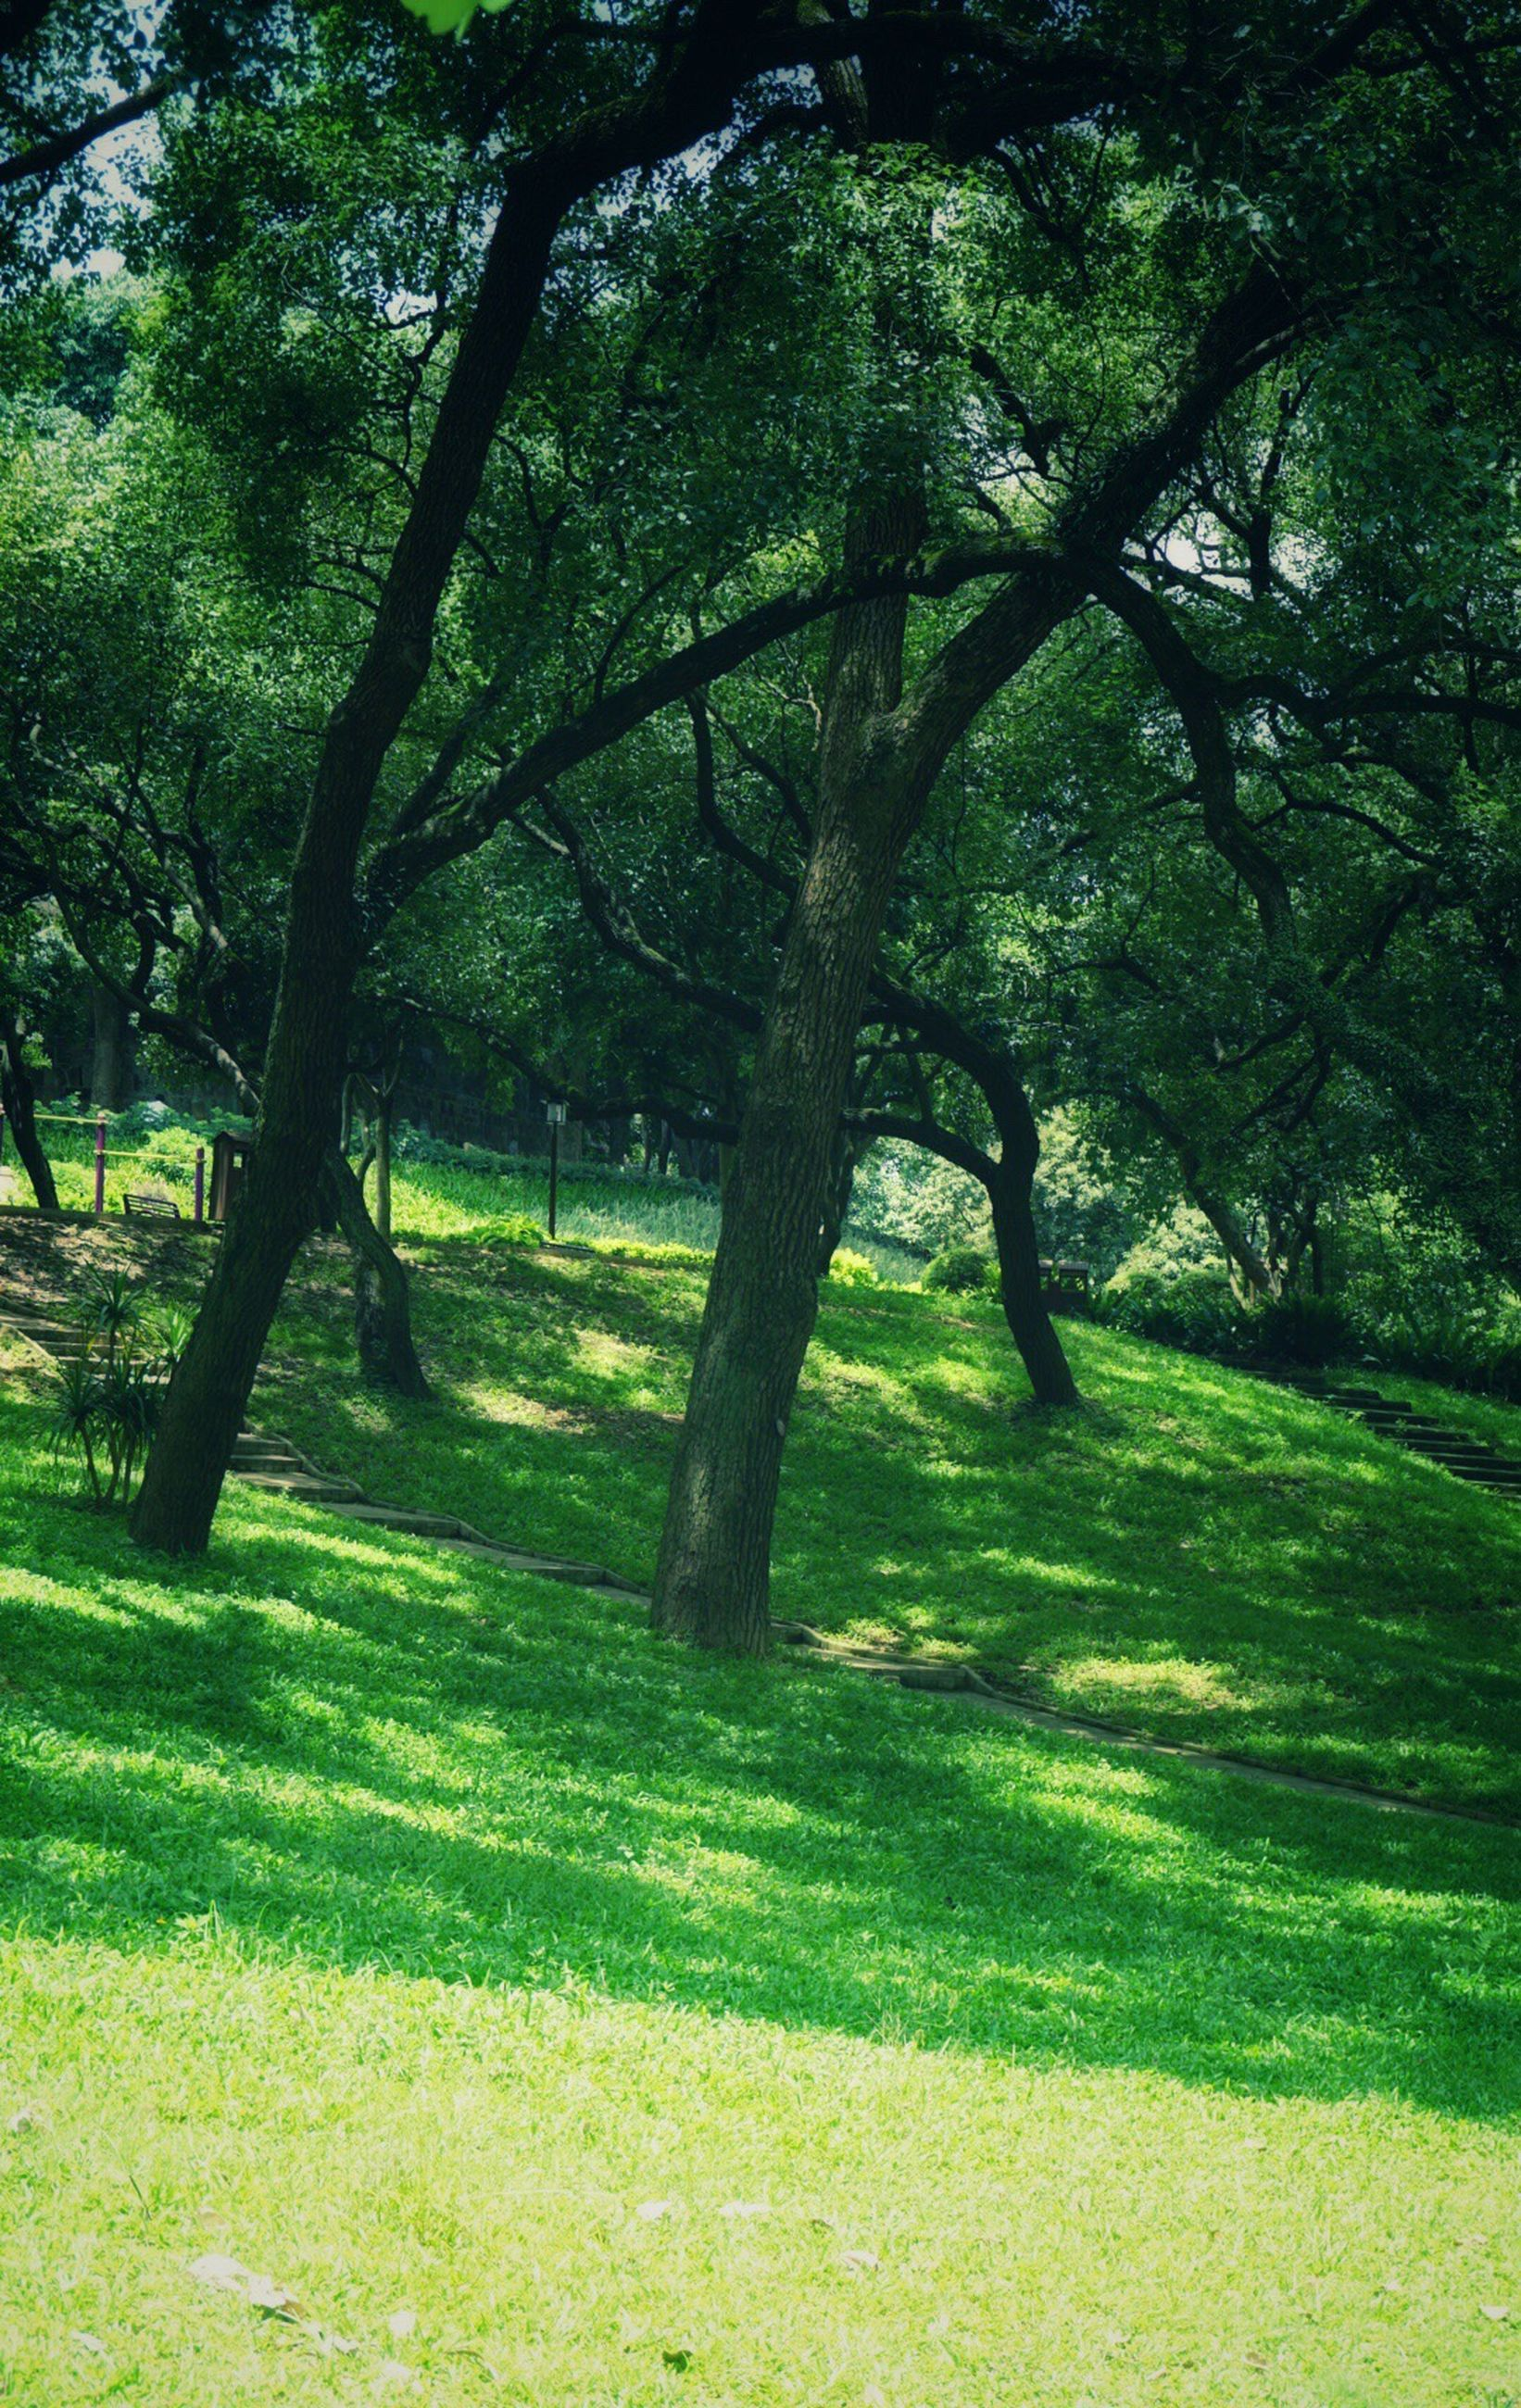 tree, grass, green color, tranquility, growth, tree trunk, tranquil scene, nature, beauty in nature, landscape, field, scenics, grassy, branch, sunlight, shadow, park - man made space, day, forest, outdoors